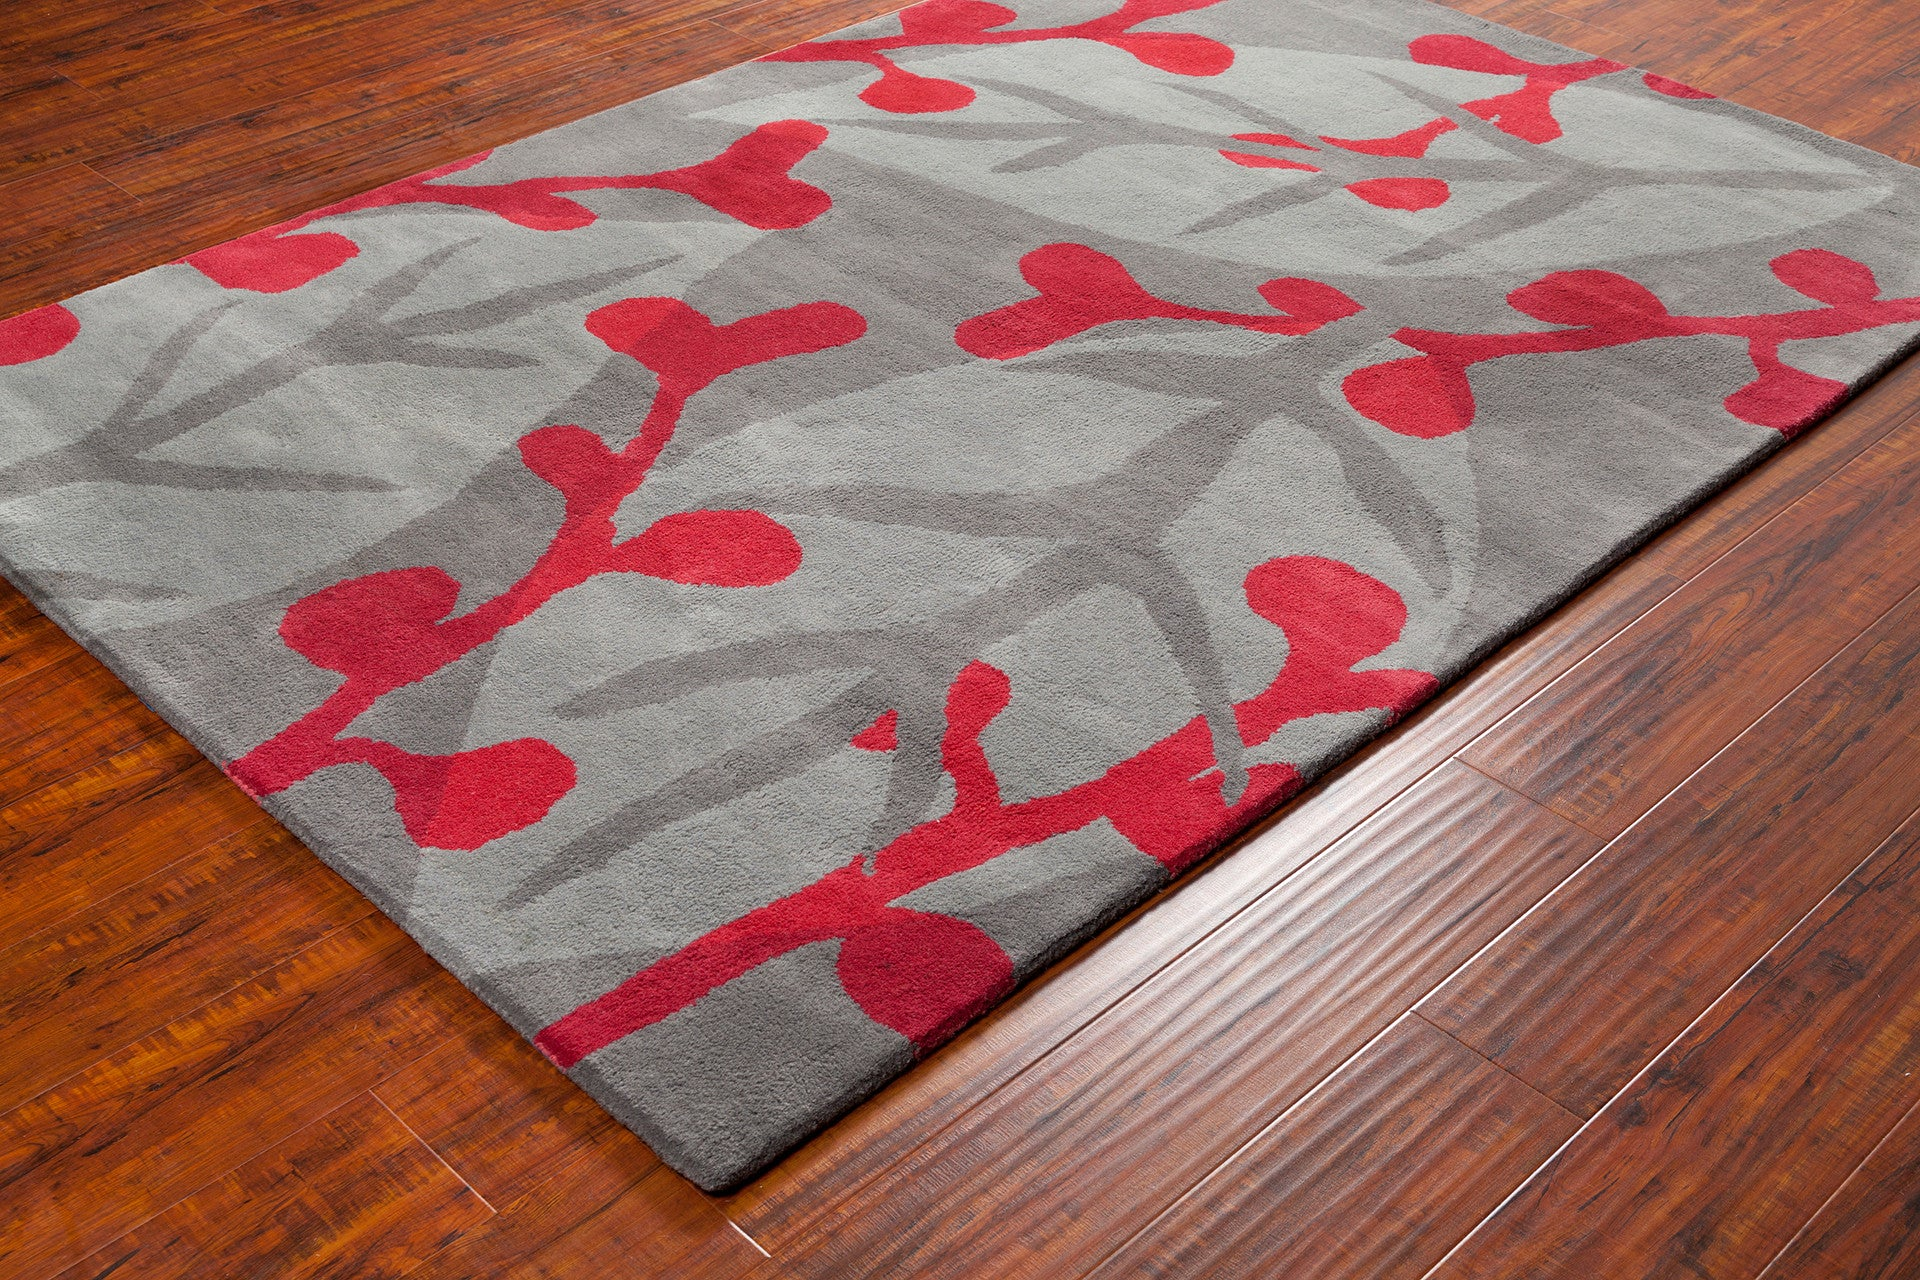 stella collection hand tufted area rug in grey red design by chandra burke decor. Black Bedroom Furniture Sets. Home Design Ideas